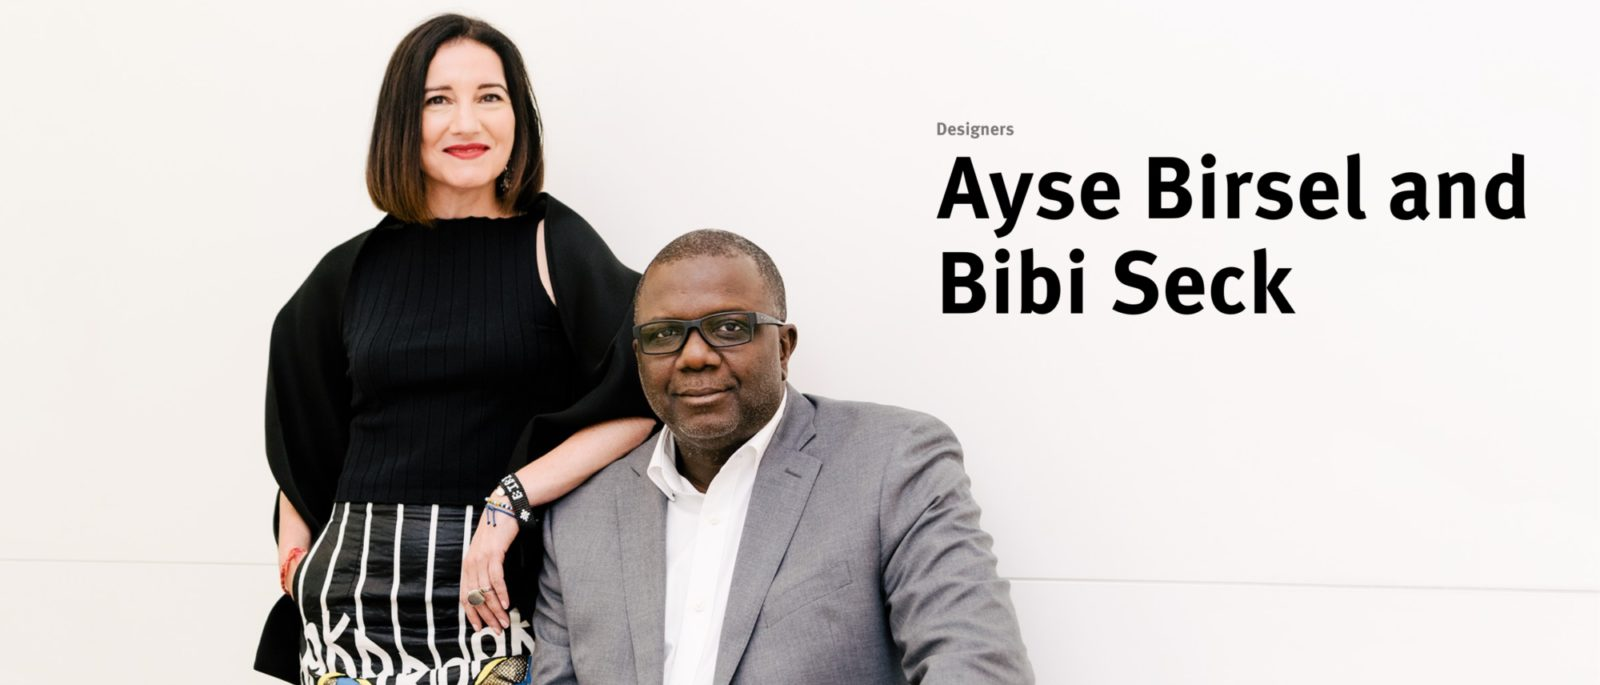 Ayse Birsel Bibi Seck campaign page cover photo